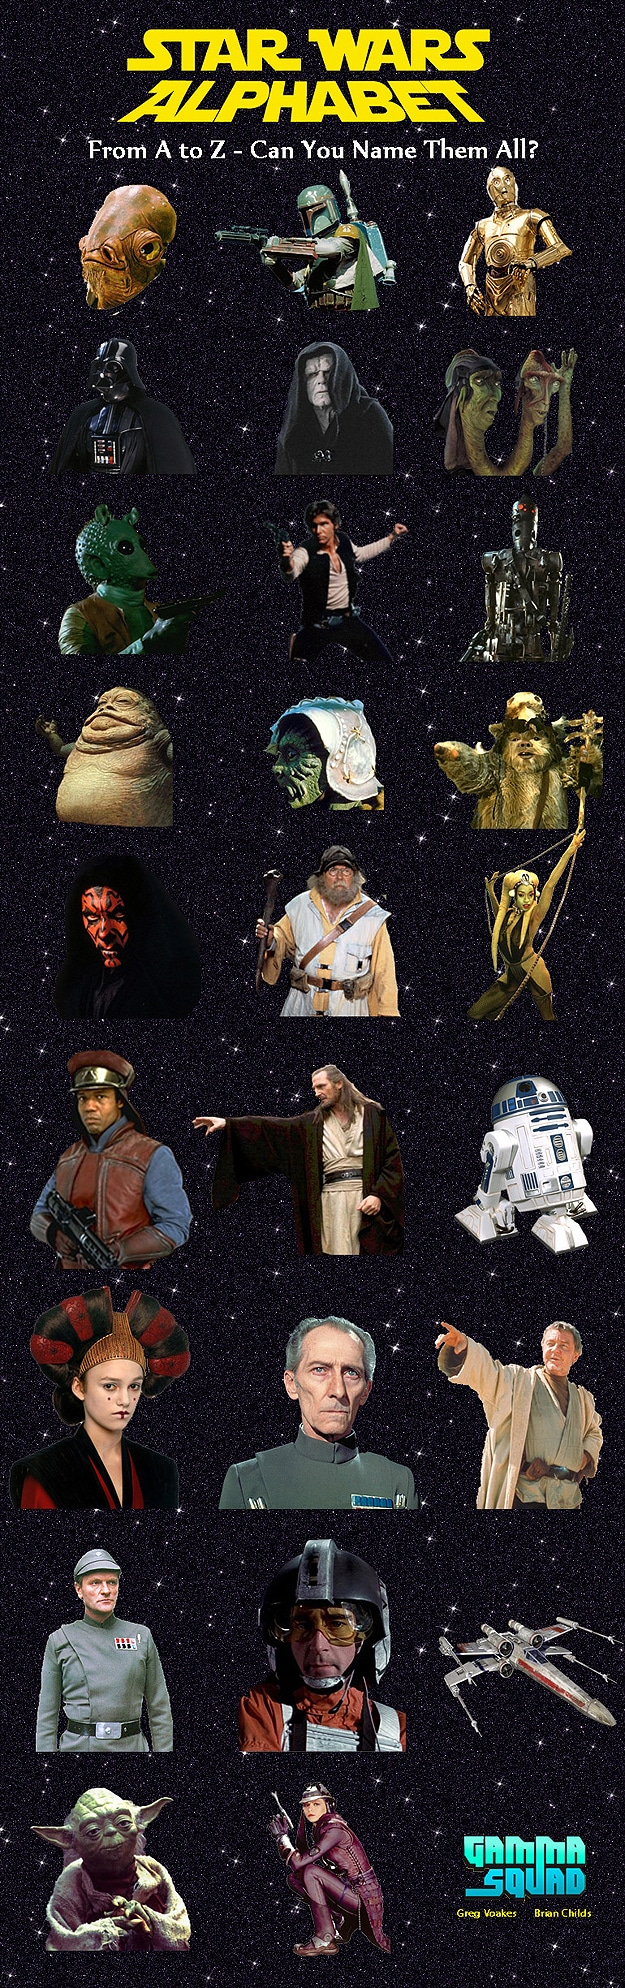 Test Your Star Wars Trivia